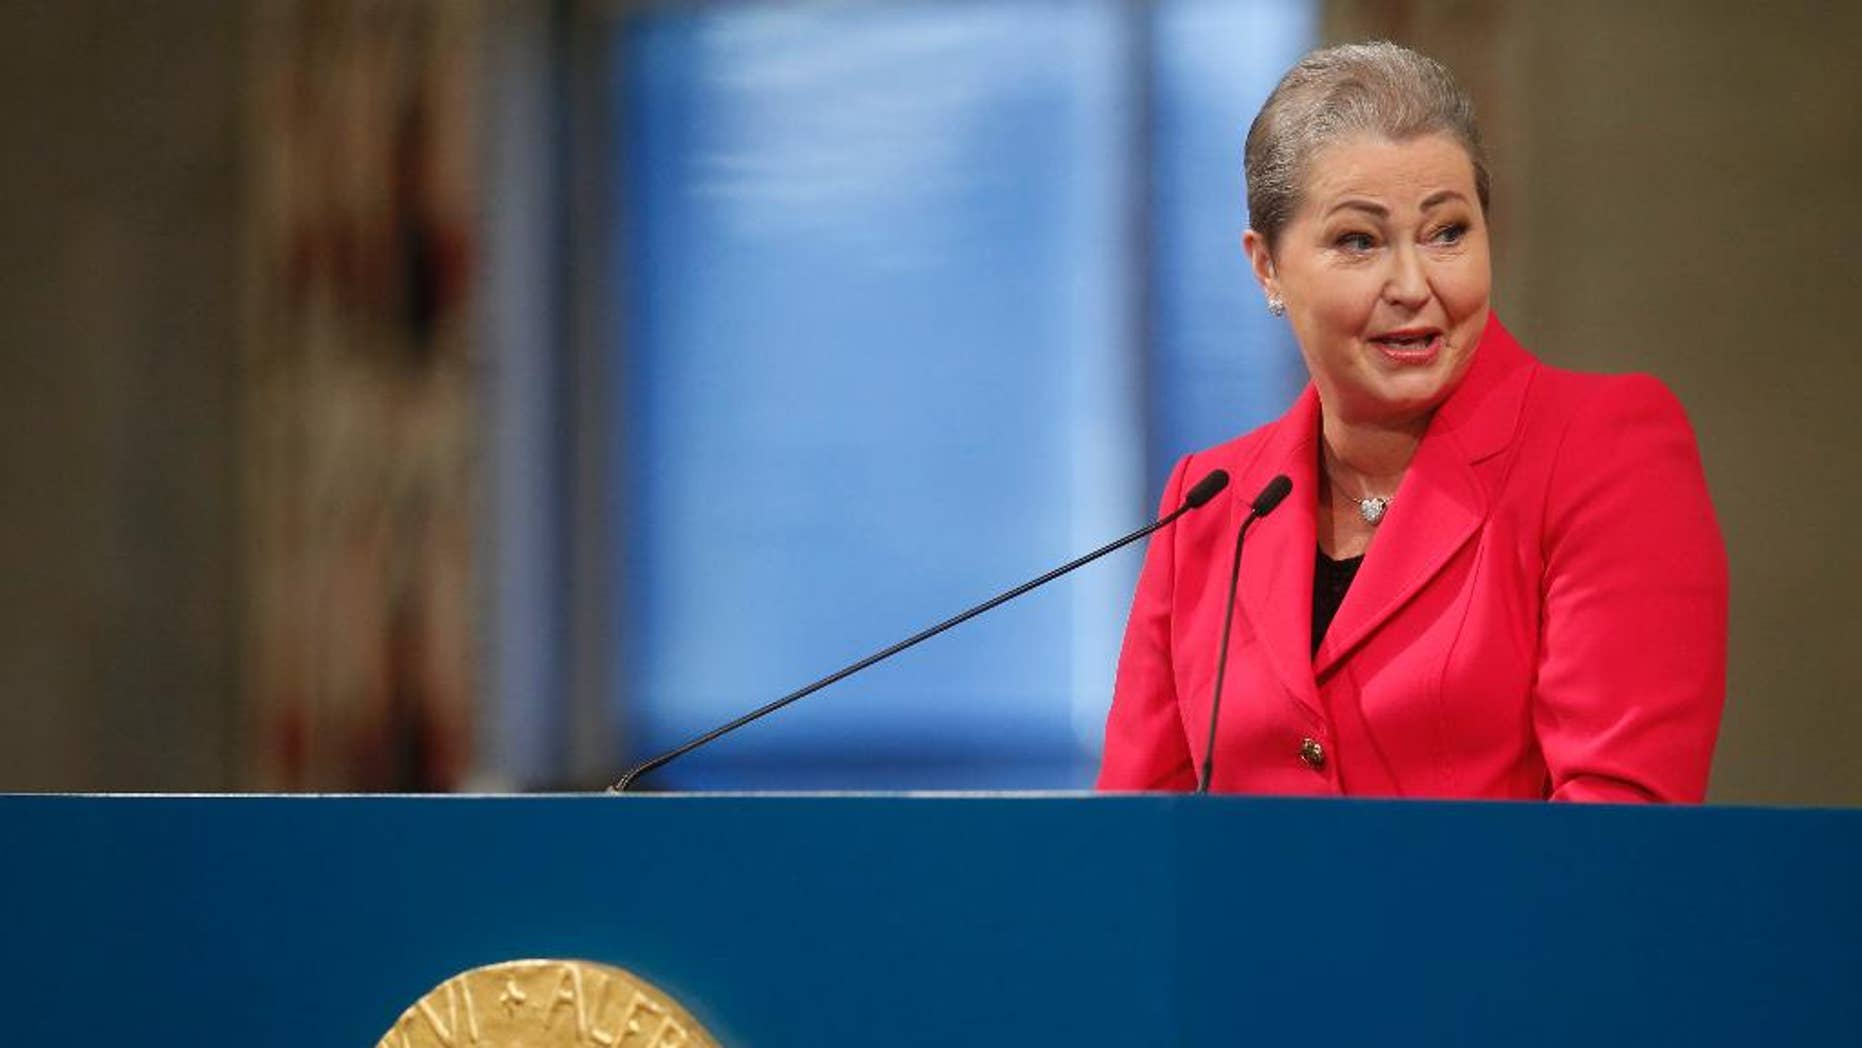 FILE - This is a Wednesday Dec. 10. 2015  file photo of Chair of the Nobel Committee, Kaci Kullmann Five, as she speaks at the Nobel Peace Prize award ceremony in Oslo, Norway. Norwegian Nobel officials said Monday Feb. 20, 2017 that the head of Norwegian Nobel Committee, Kaci Kullmann Five, has died at age 65. Five died Sunday after being treated for a recurrence of cancer.    (Cornelius Poppe / NTB scanpix via AP) NORWAY OUT